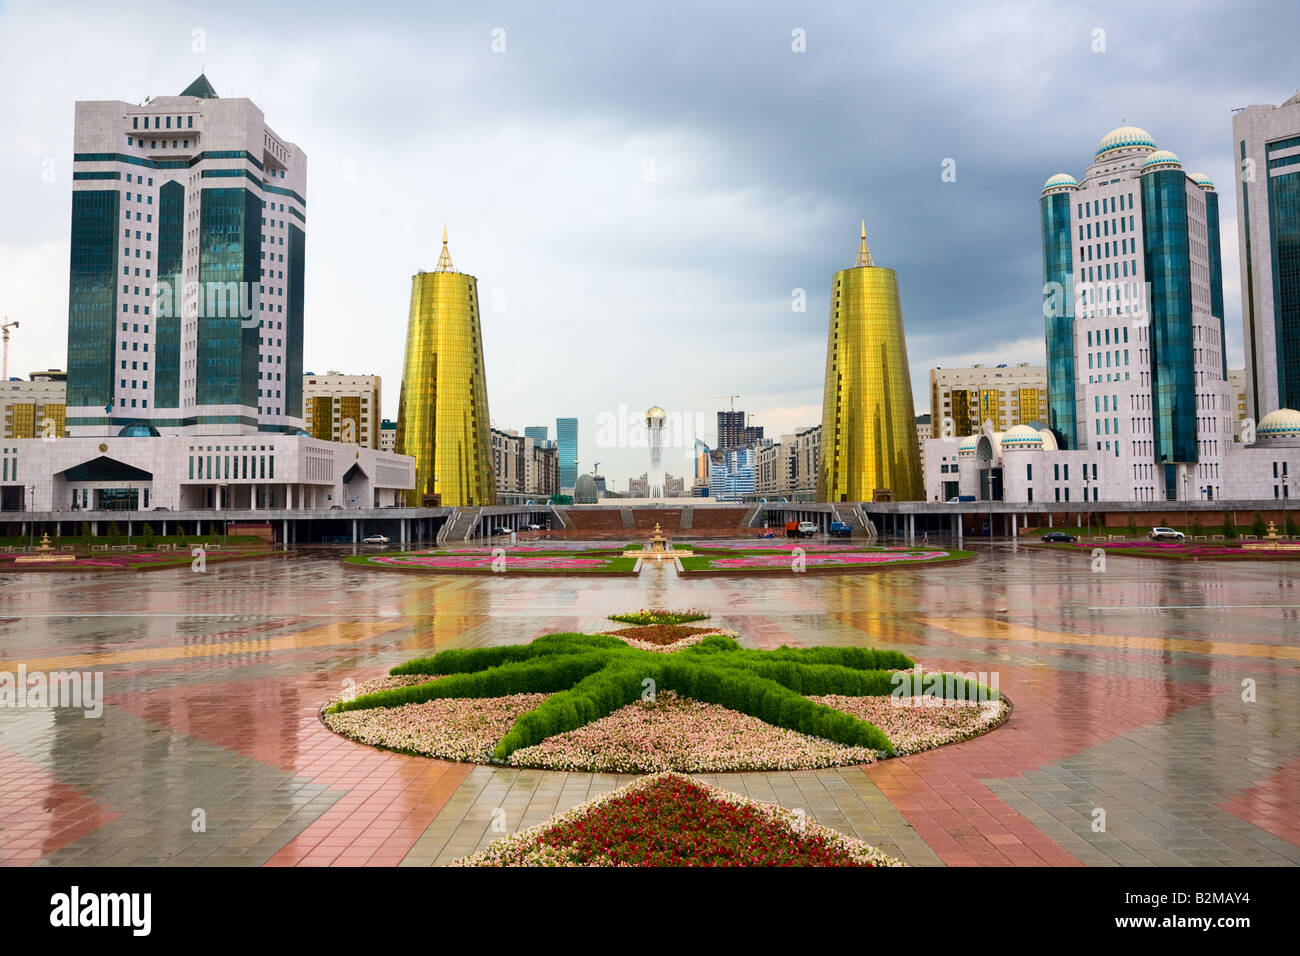 City landscape Astana capital of Kazakhstan Republic august 2007 - Stock Image